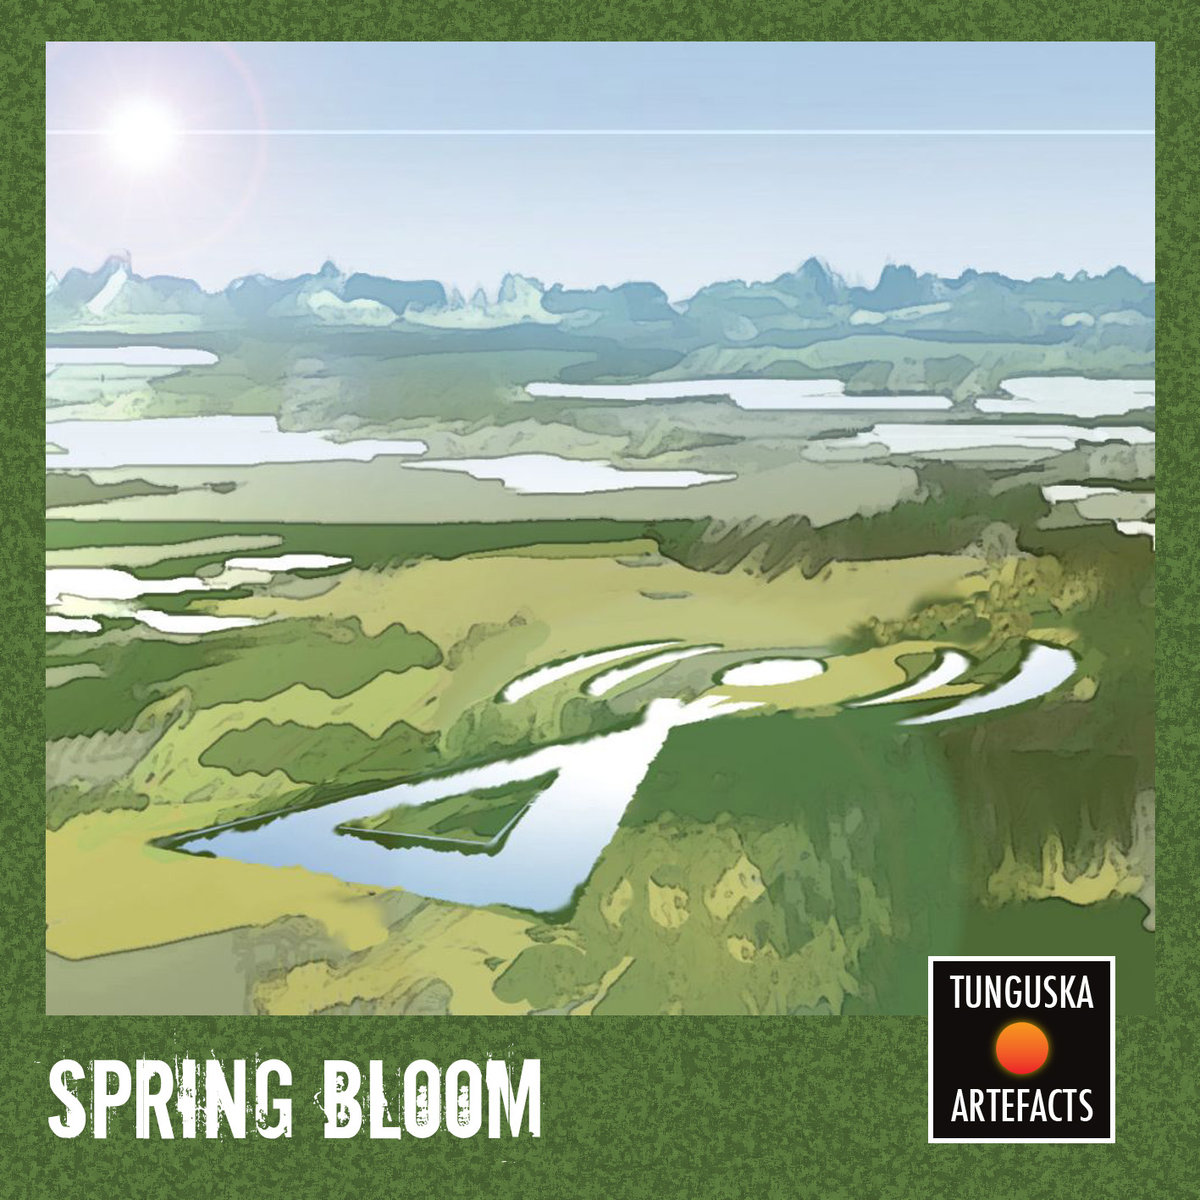 Eugene Kush - Winter Waltz (Where You Can Love) @ 'Tunguska Artefacts - Spring Bloom' album (electronic, ambient)